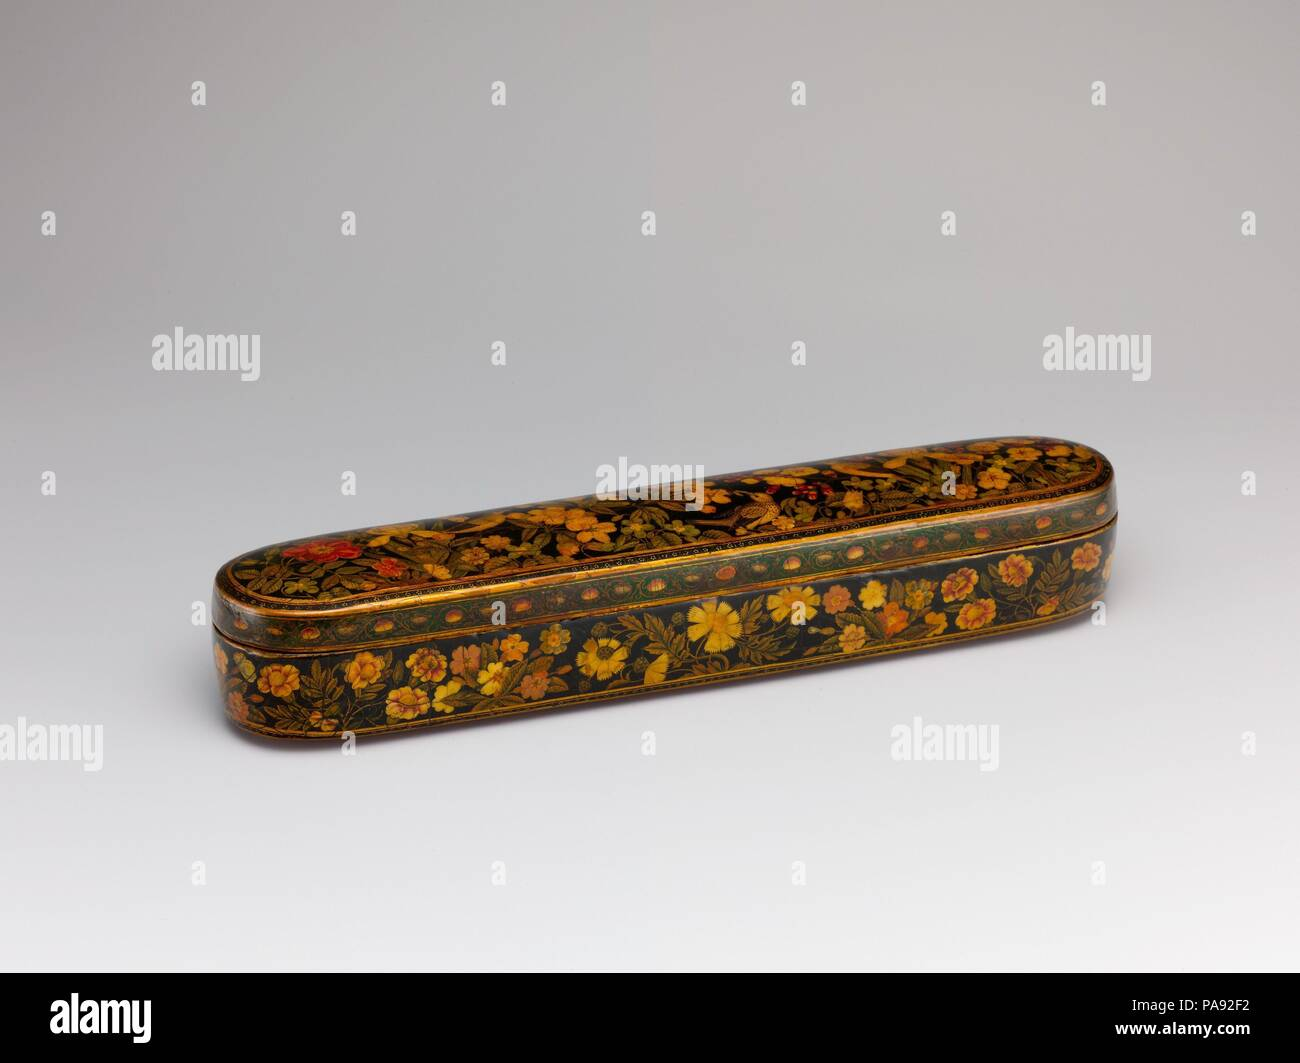 Pen Box with a Europeanizing Landscape. Artist: Hajji Muhammad. Dimensions: LengtH. 11 in. (27.9 cm)  WidtH. 2 1/4in. (5.7cm). Date: late 17th-early 18th century.  This pen box is signed by the later Safavid artist Haji Muhammad. The Europeanized landscape depicted on the inside cover of this box is associated with the style of this artist and other members of his family, most famously his celebrated brother Muhammad Zaman. The high status accorded to the arts of calligraphy and writing in the Islamic world led to the production of many handsome accessories such as this pen box. Museum: Metrop Stock Photo